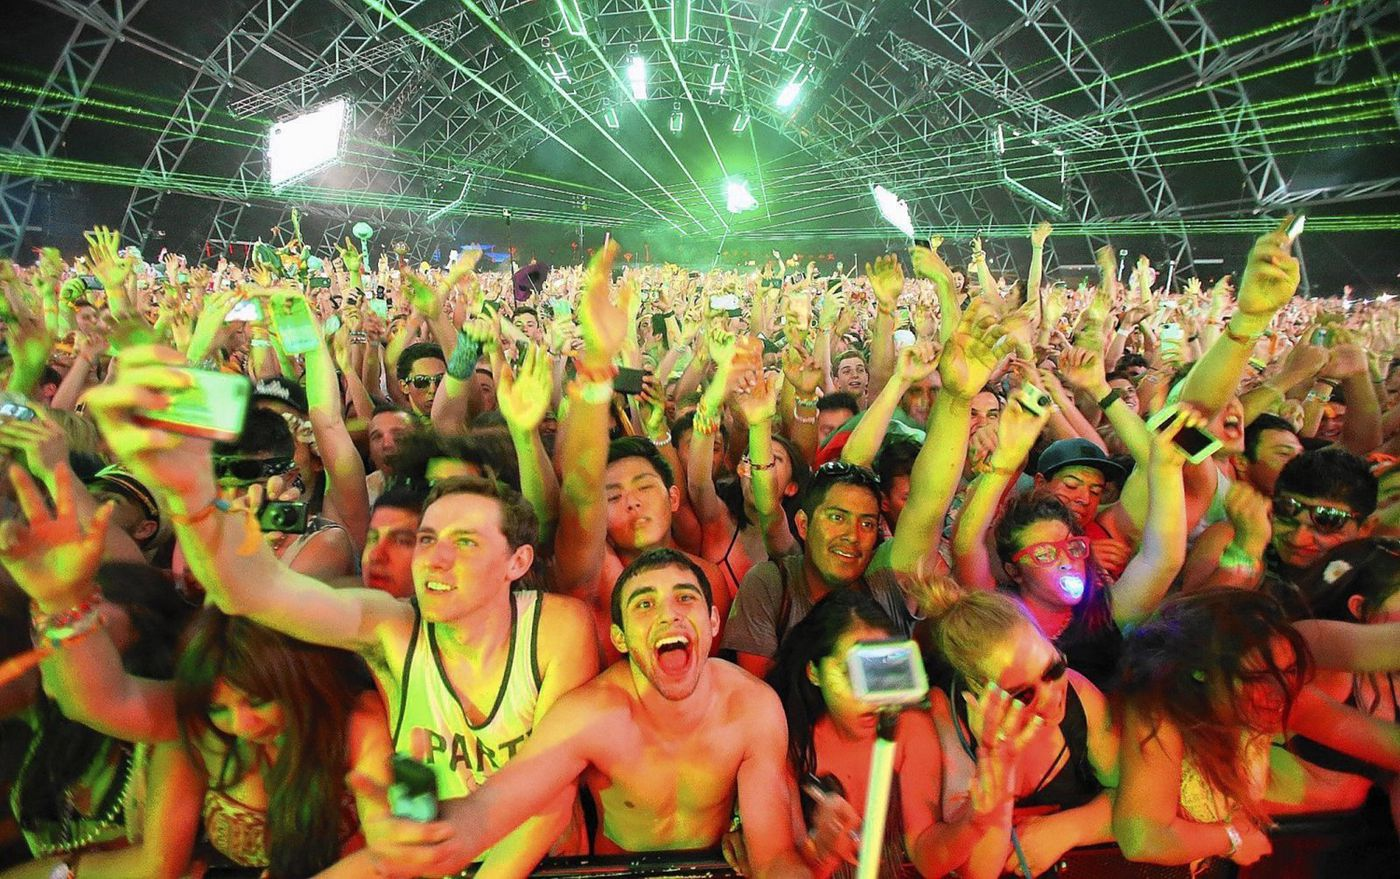 More than 250,000 fans were to descend on Indio and Palm Springs for the consecutive weekends of the Coachella festival, but the concert has been canceled.